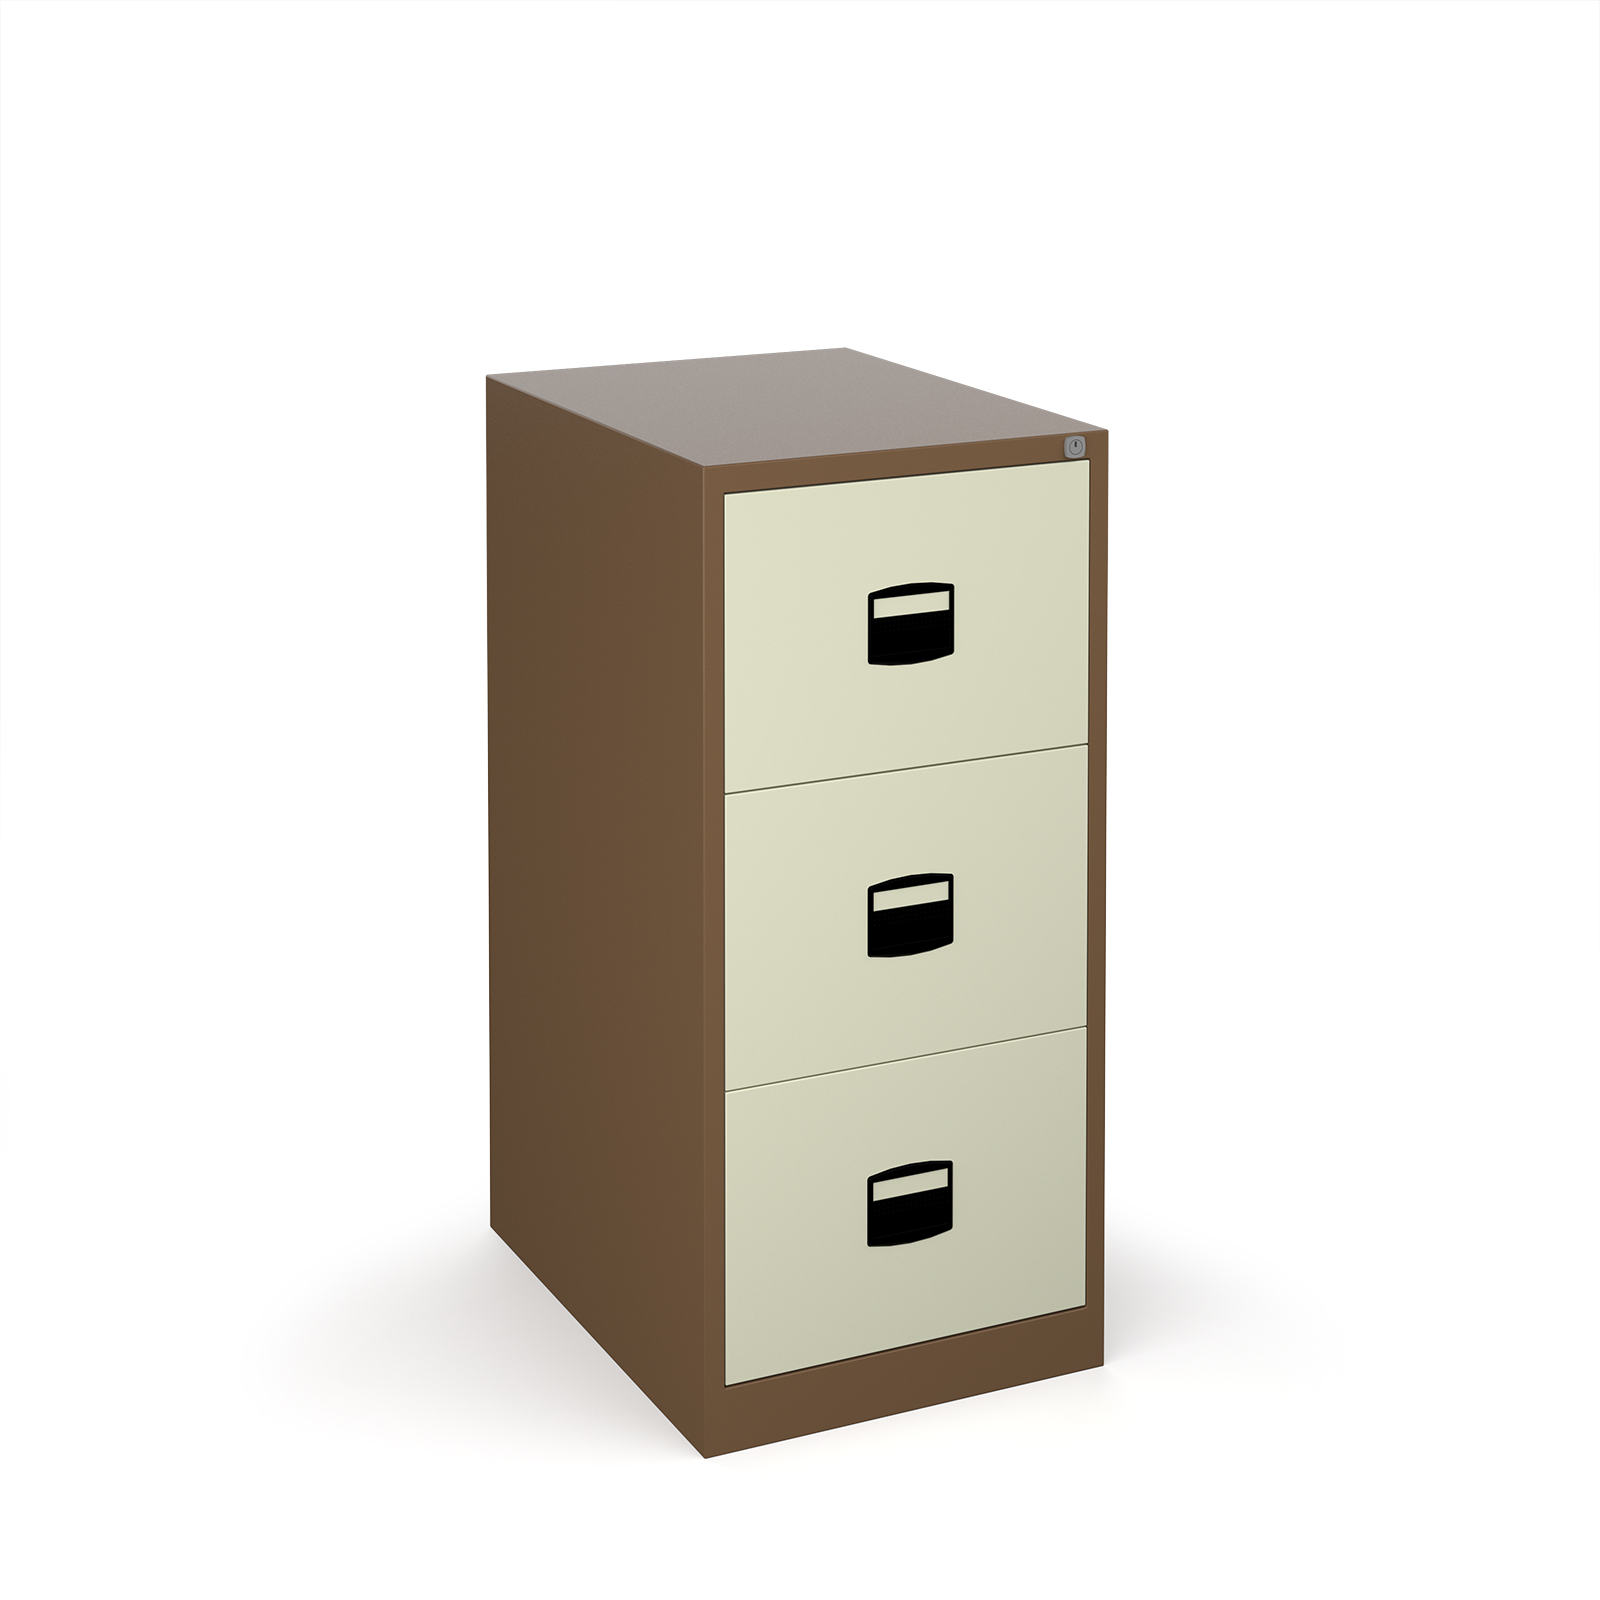 Steel Steel 3 drawer contract filing cabinet 1016mm high - coffee/cream